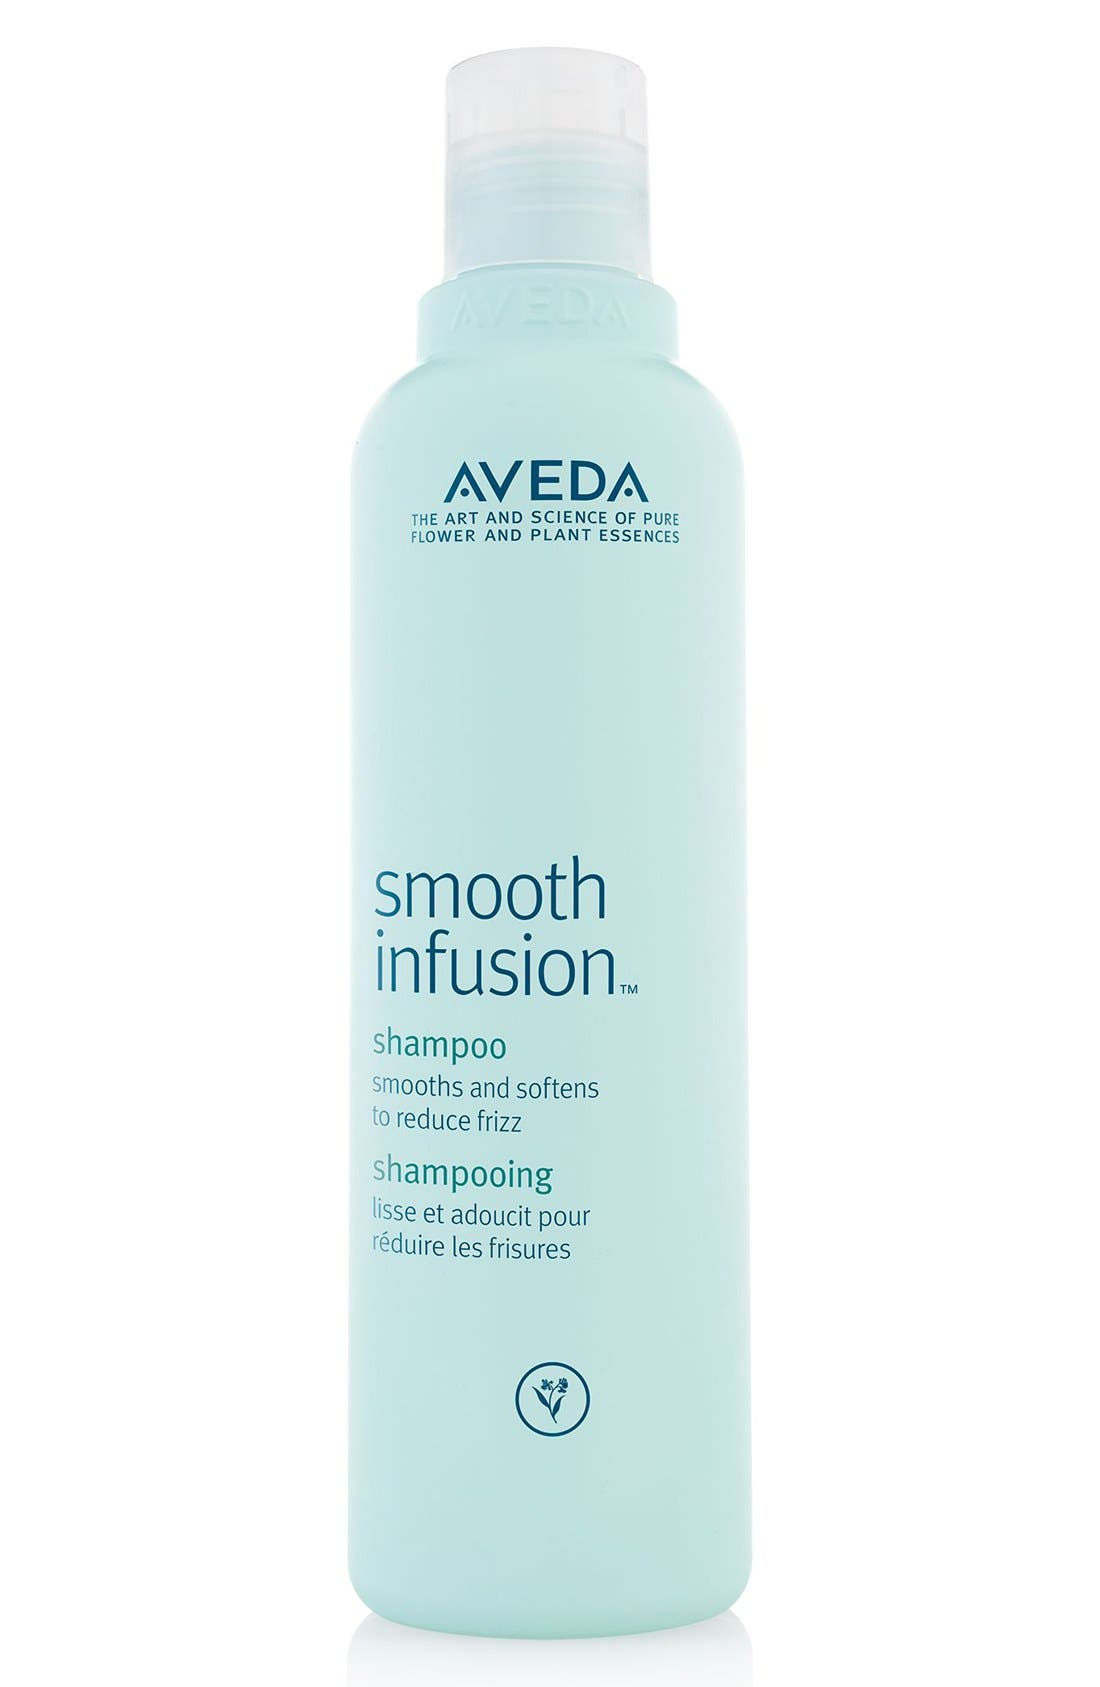 Aveda 'smooth infusion™' Shampoo